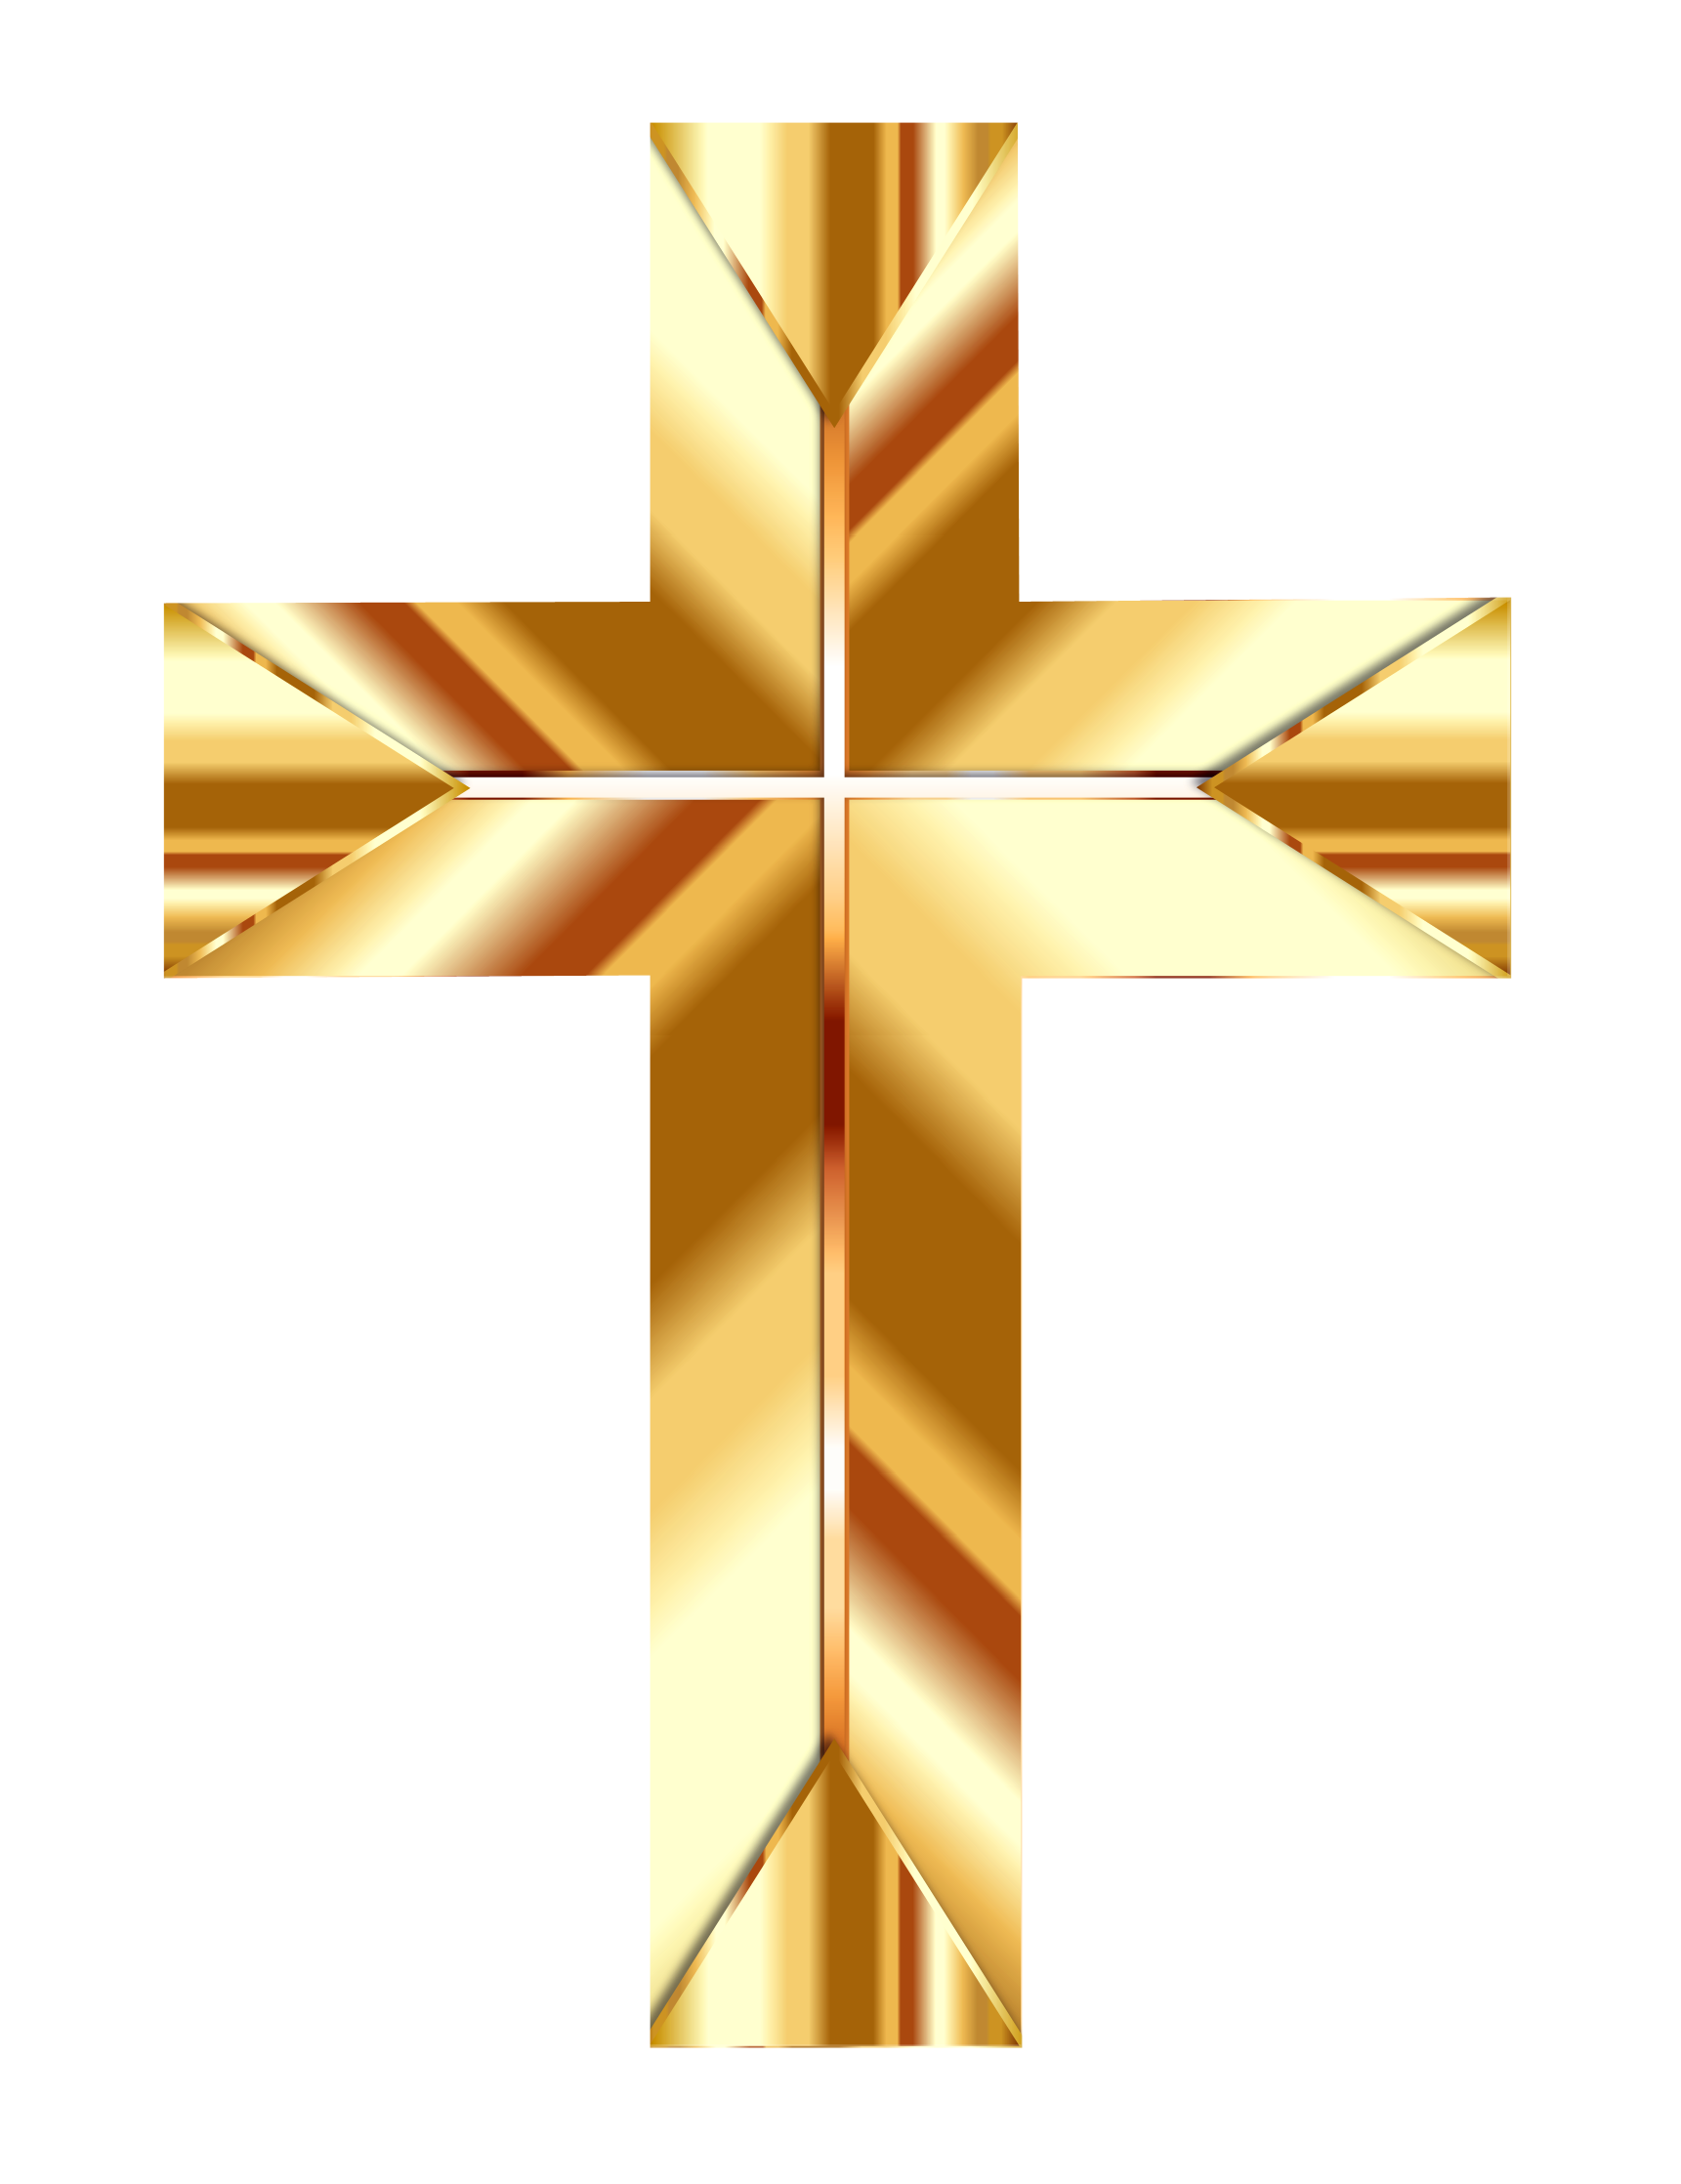 Transparent cross clipart clip royalty free download Christian Cross PNG Images Transparent Free Download | PNGMart.com clip royalty free download